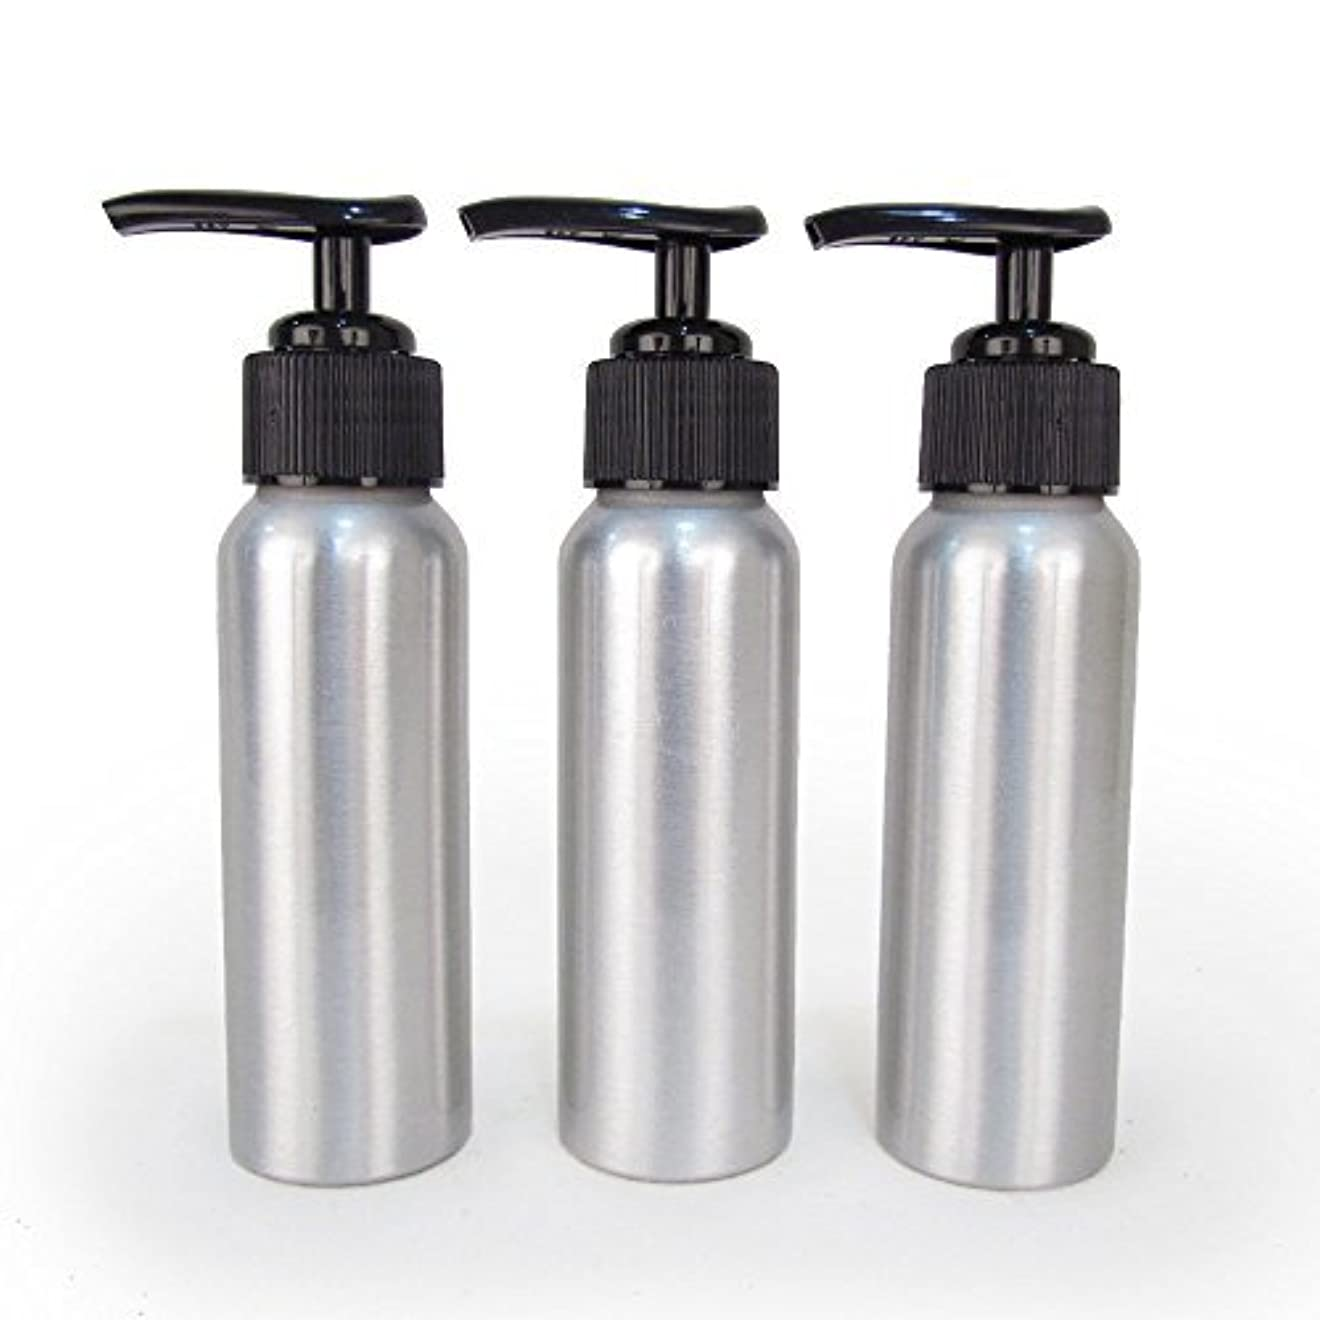 裏切り者挨拶する普通のSet of 3 - Slender Brushed Aluminum 2.7 oz Pump Bottle for Essential Oil Products by Rivertree Life [並行輸入品]